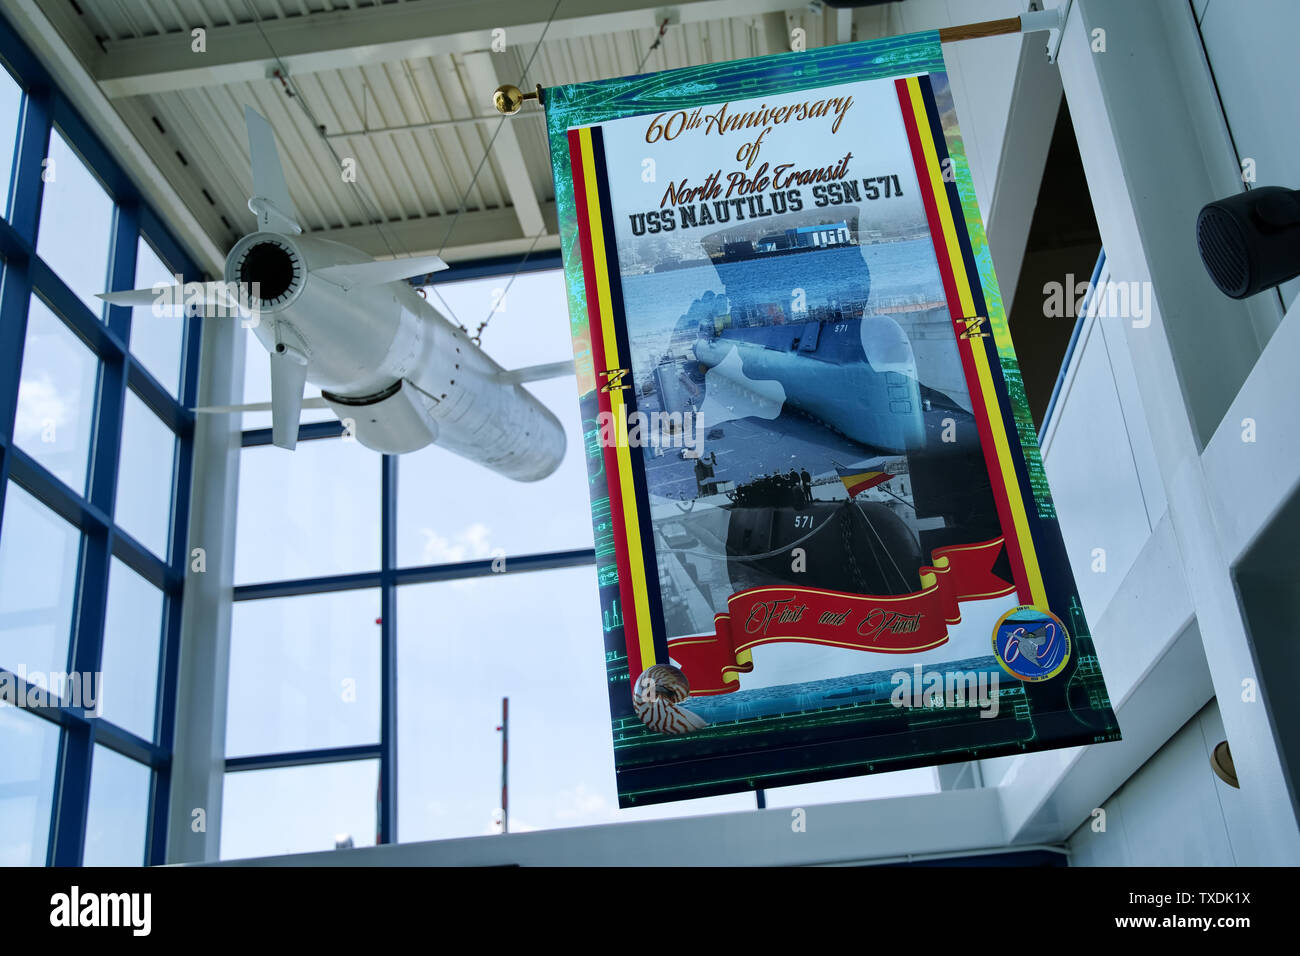 Submarine Force Museum, Groton CT USA, Jun 2019. Inside with photos, exhibits, and replicas leading to the evolution of the modern attack submarine. - Stock Image